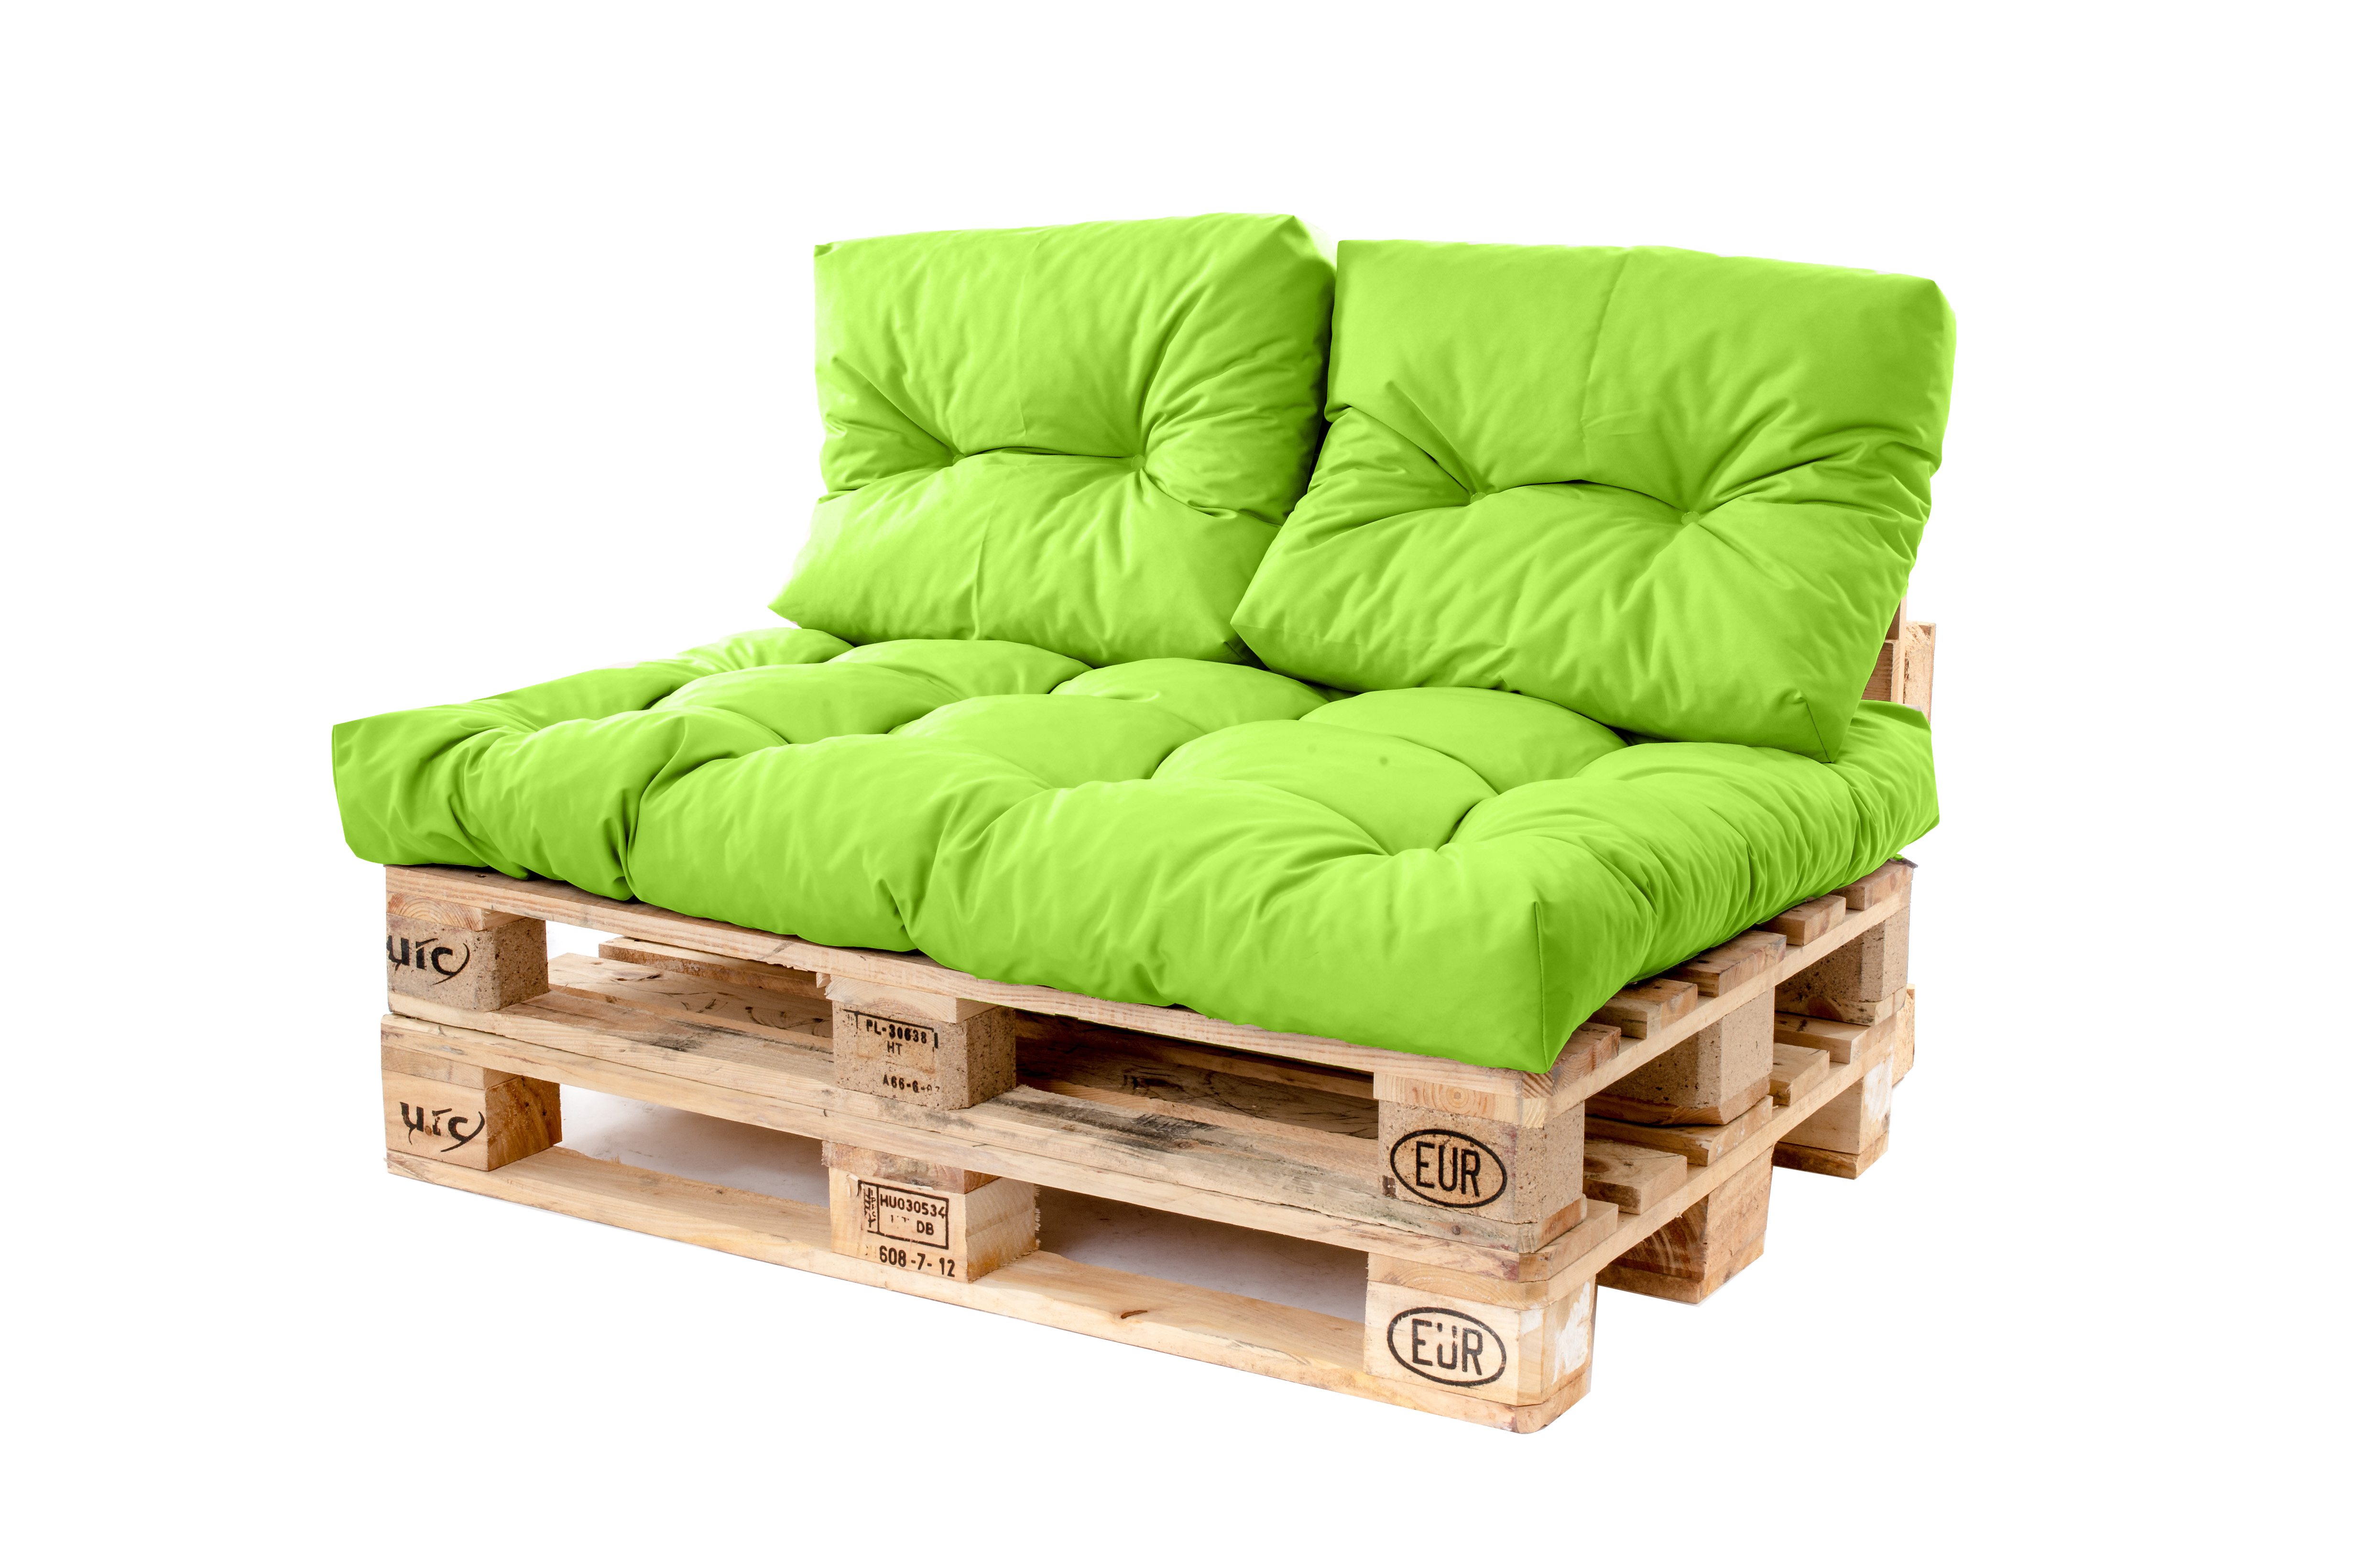 pallet sofa for sale cloud tradition cushions waterproof fabric euro size